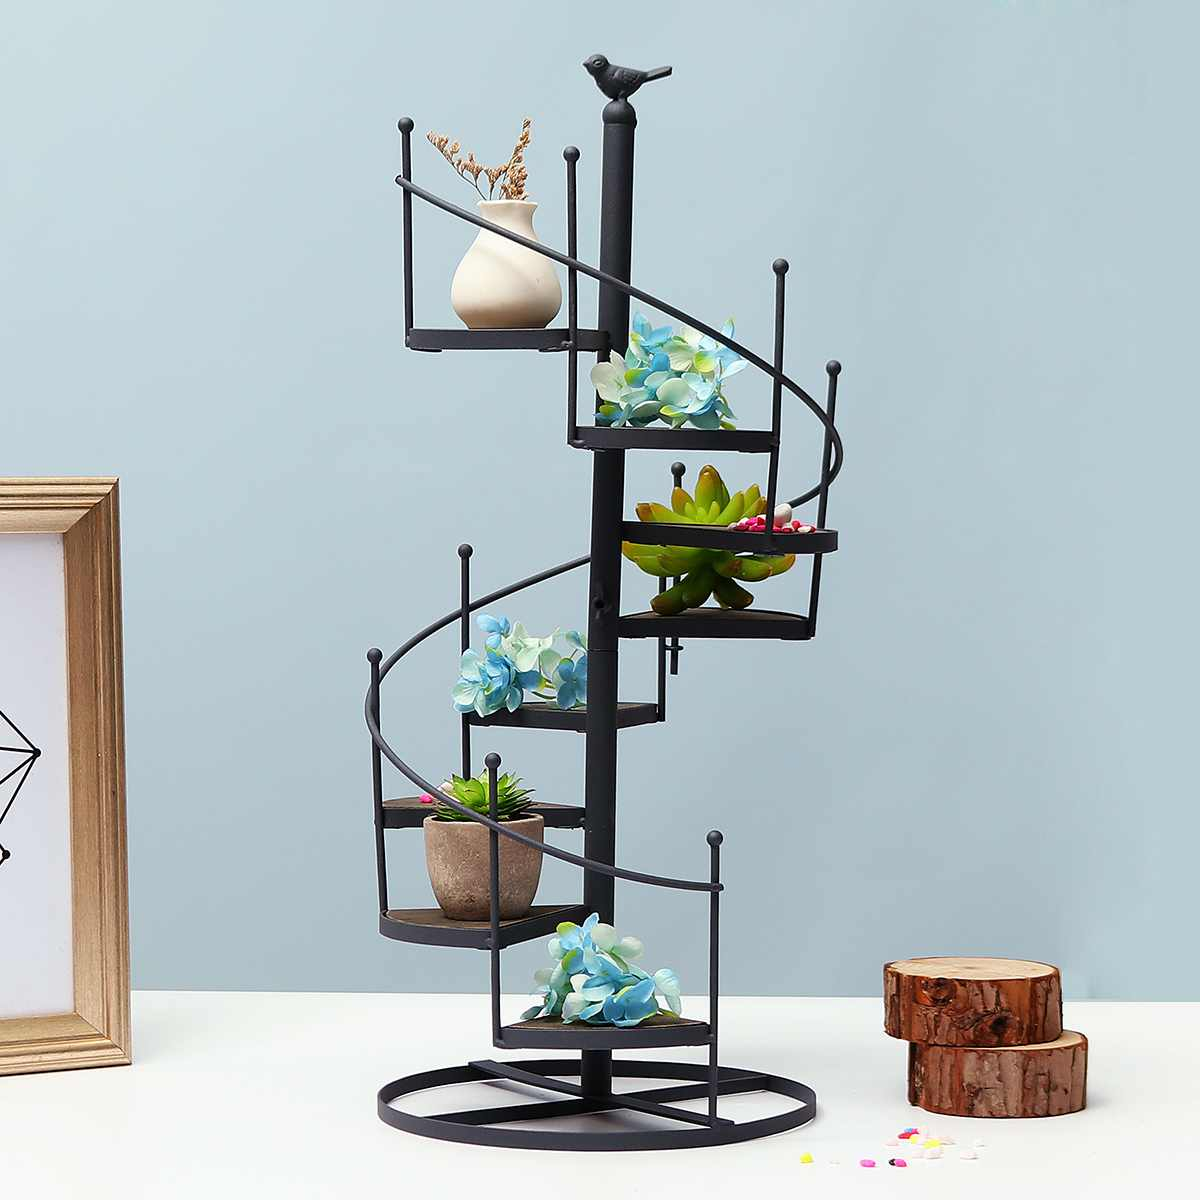 Decorative Iron-Plant-Rack Wood-Plate Flower Succulent-Shelf Stair-Shape Metal Garden